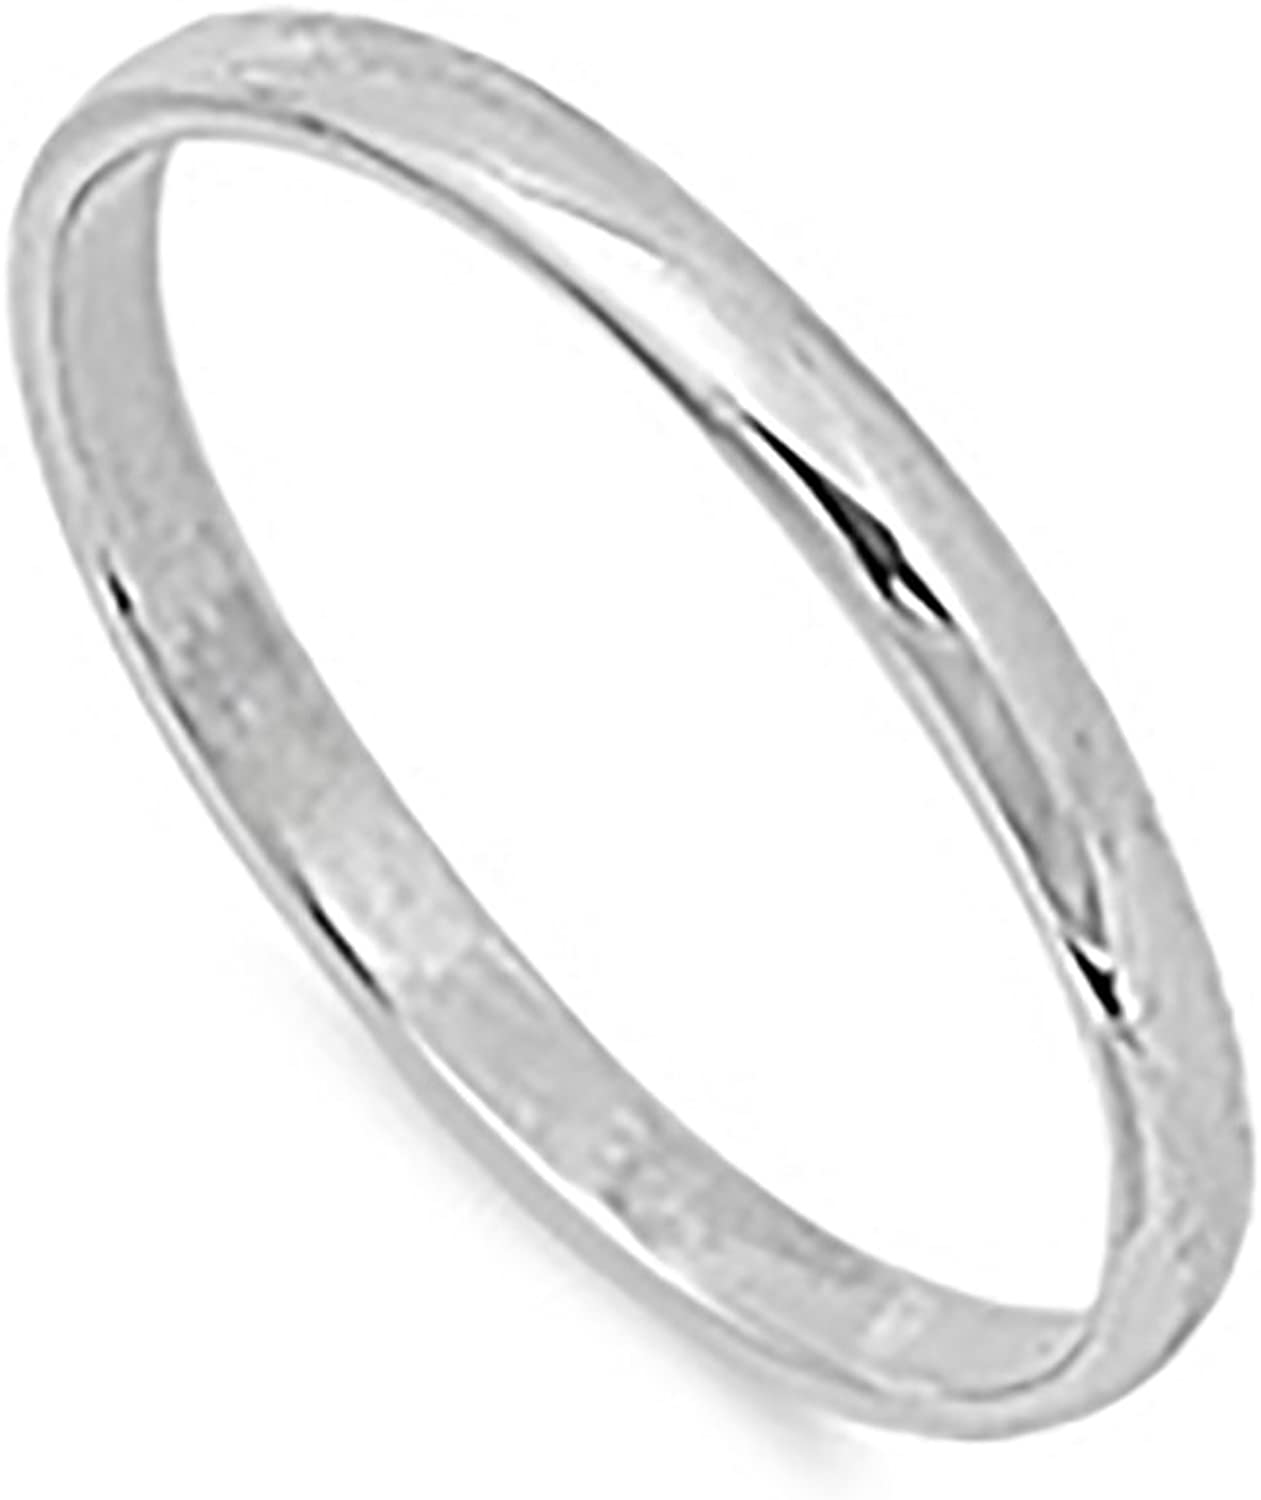 JewelryVolt Magnificent Silver Plain Band Wedding Engagement Ring Toe Pinky for Him or Her